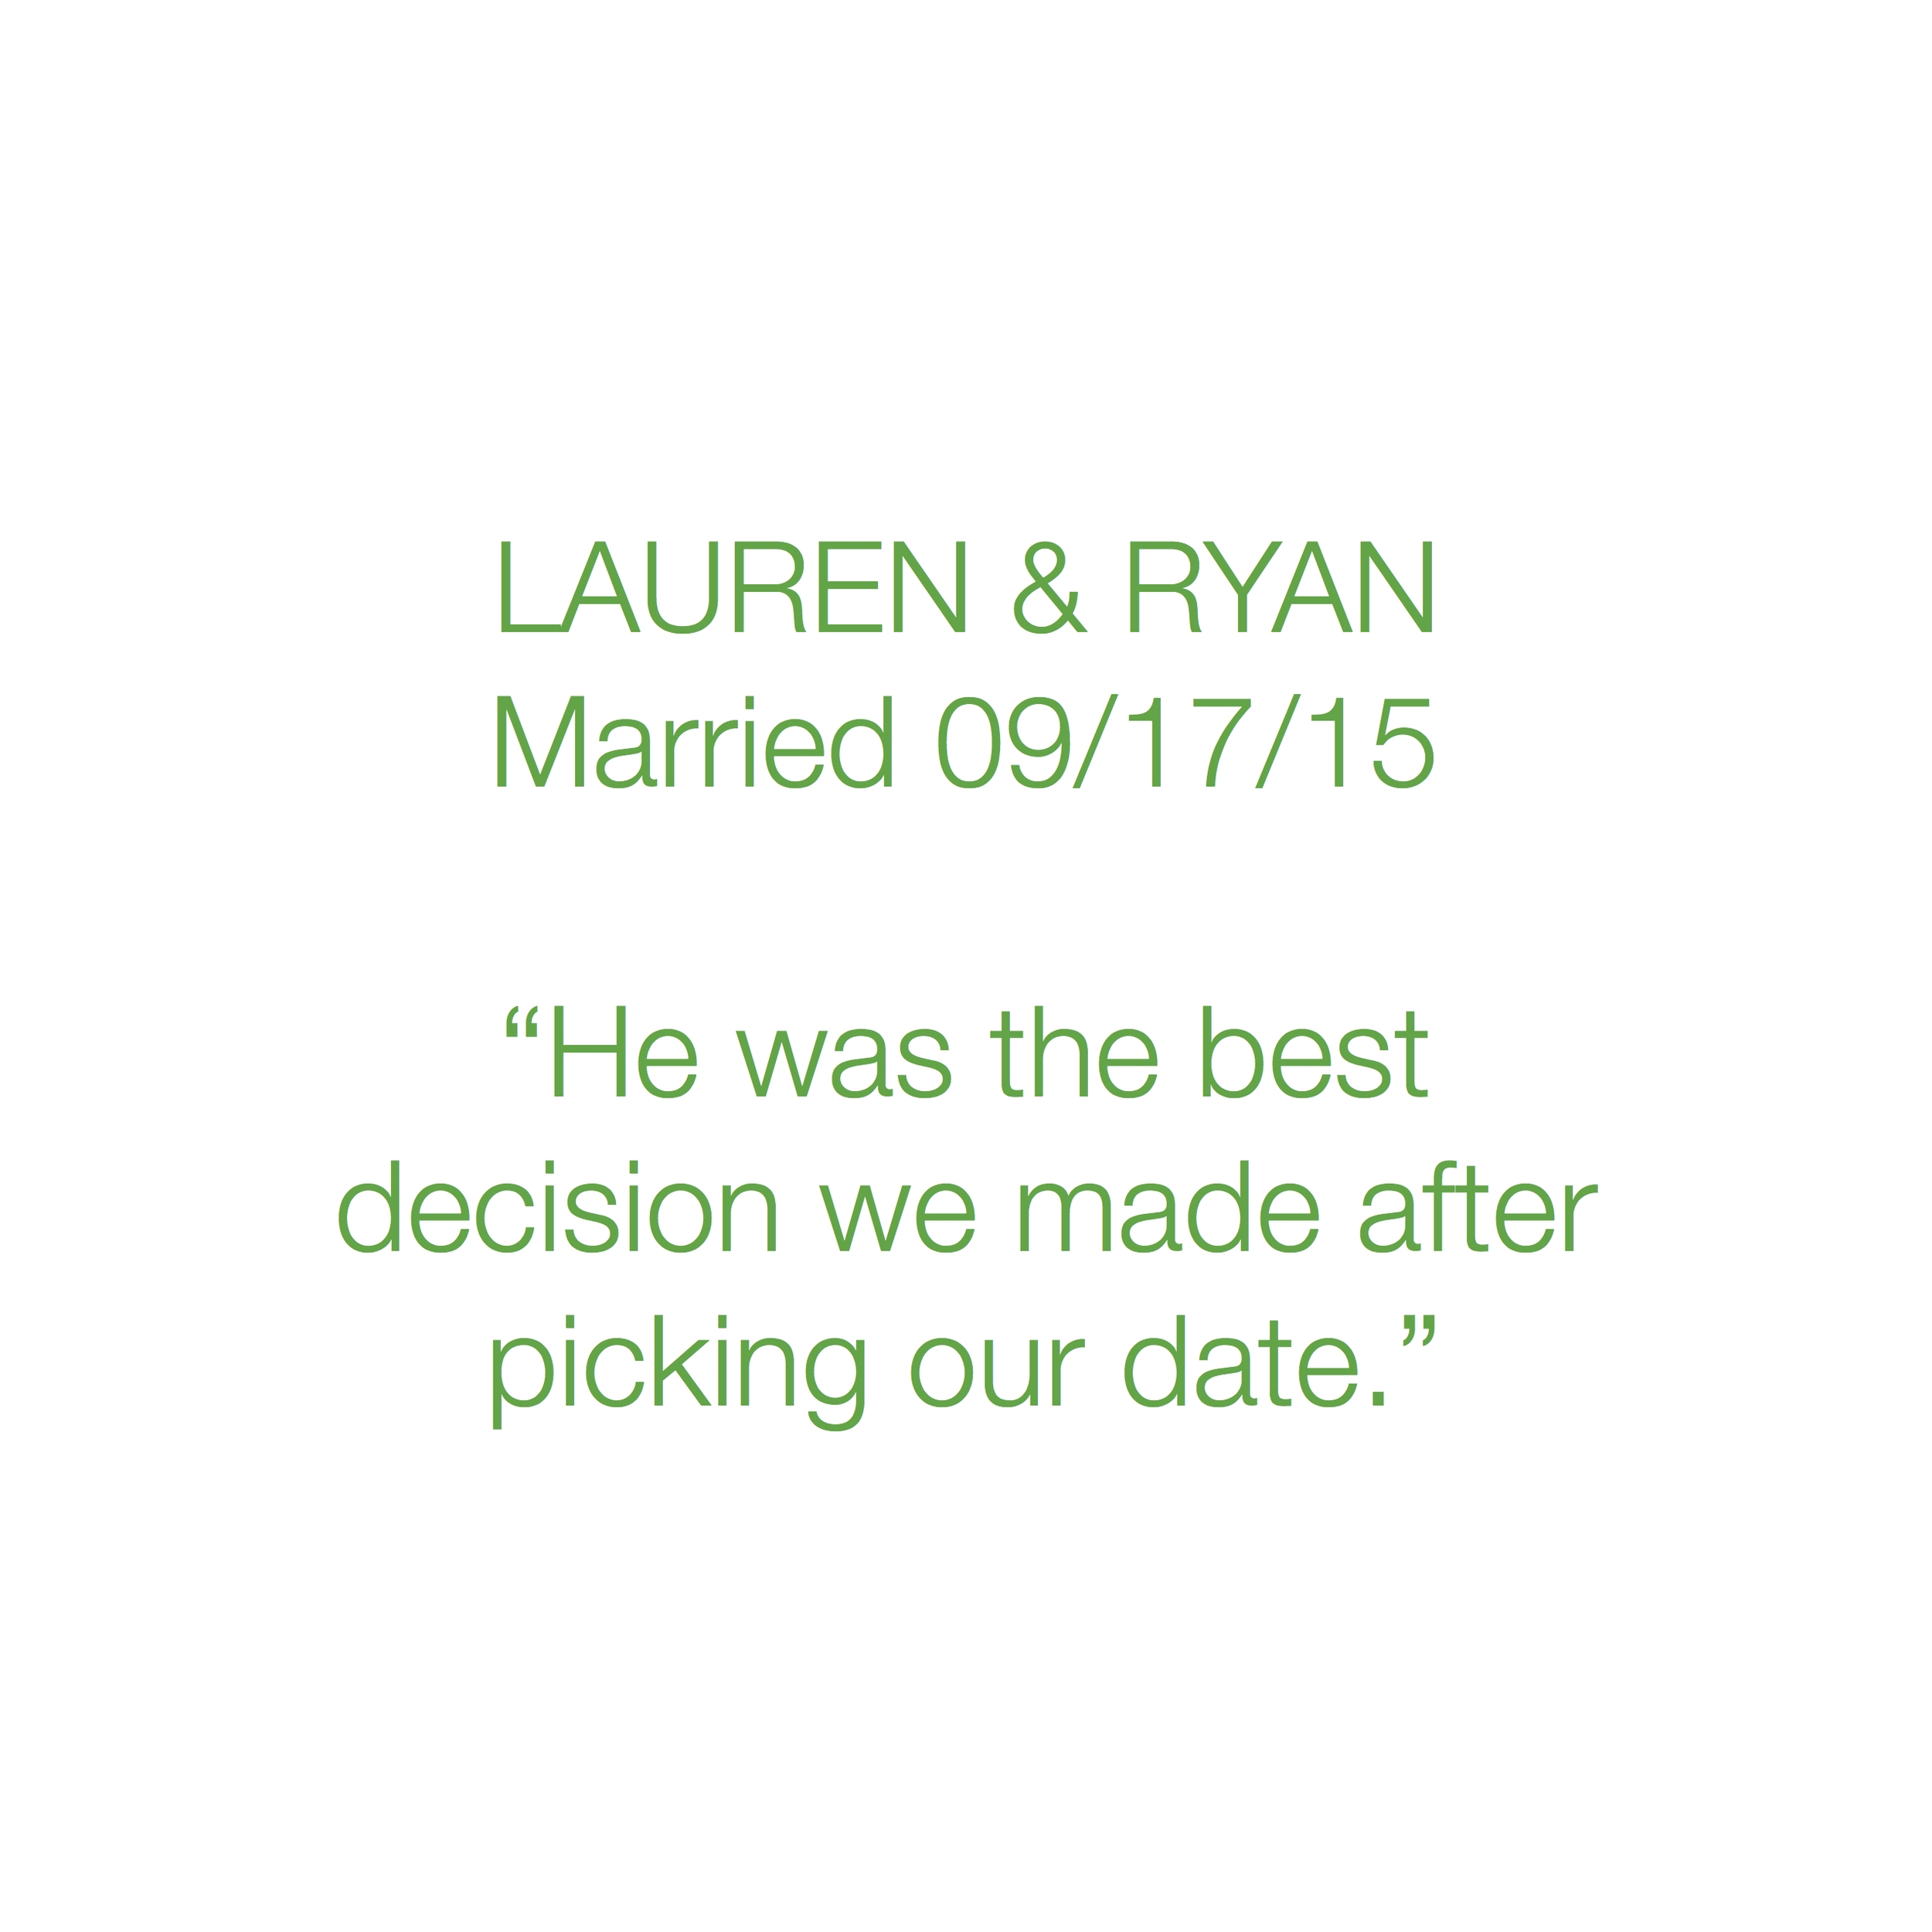 lauren and ryan.jpg